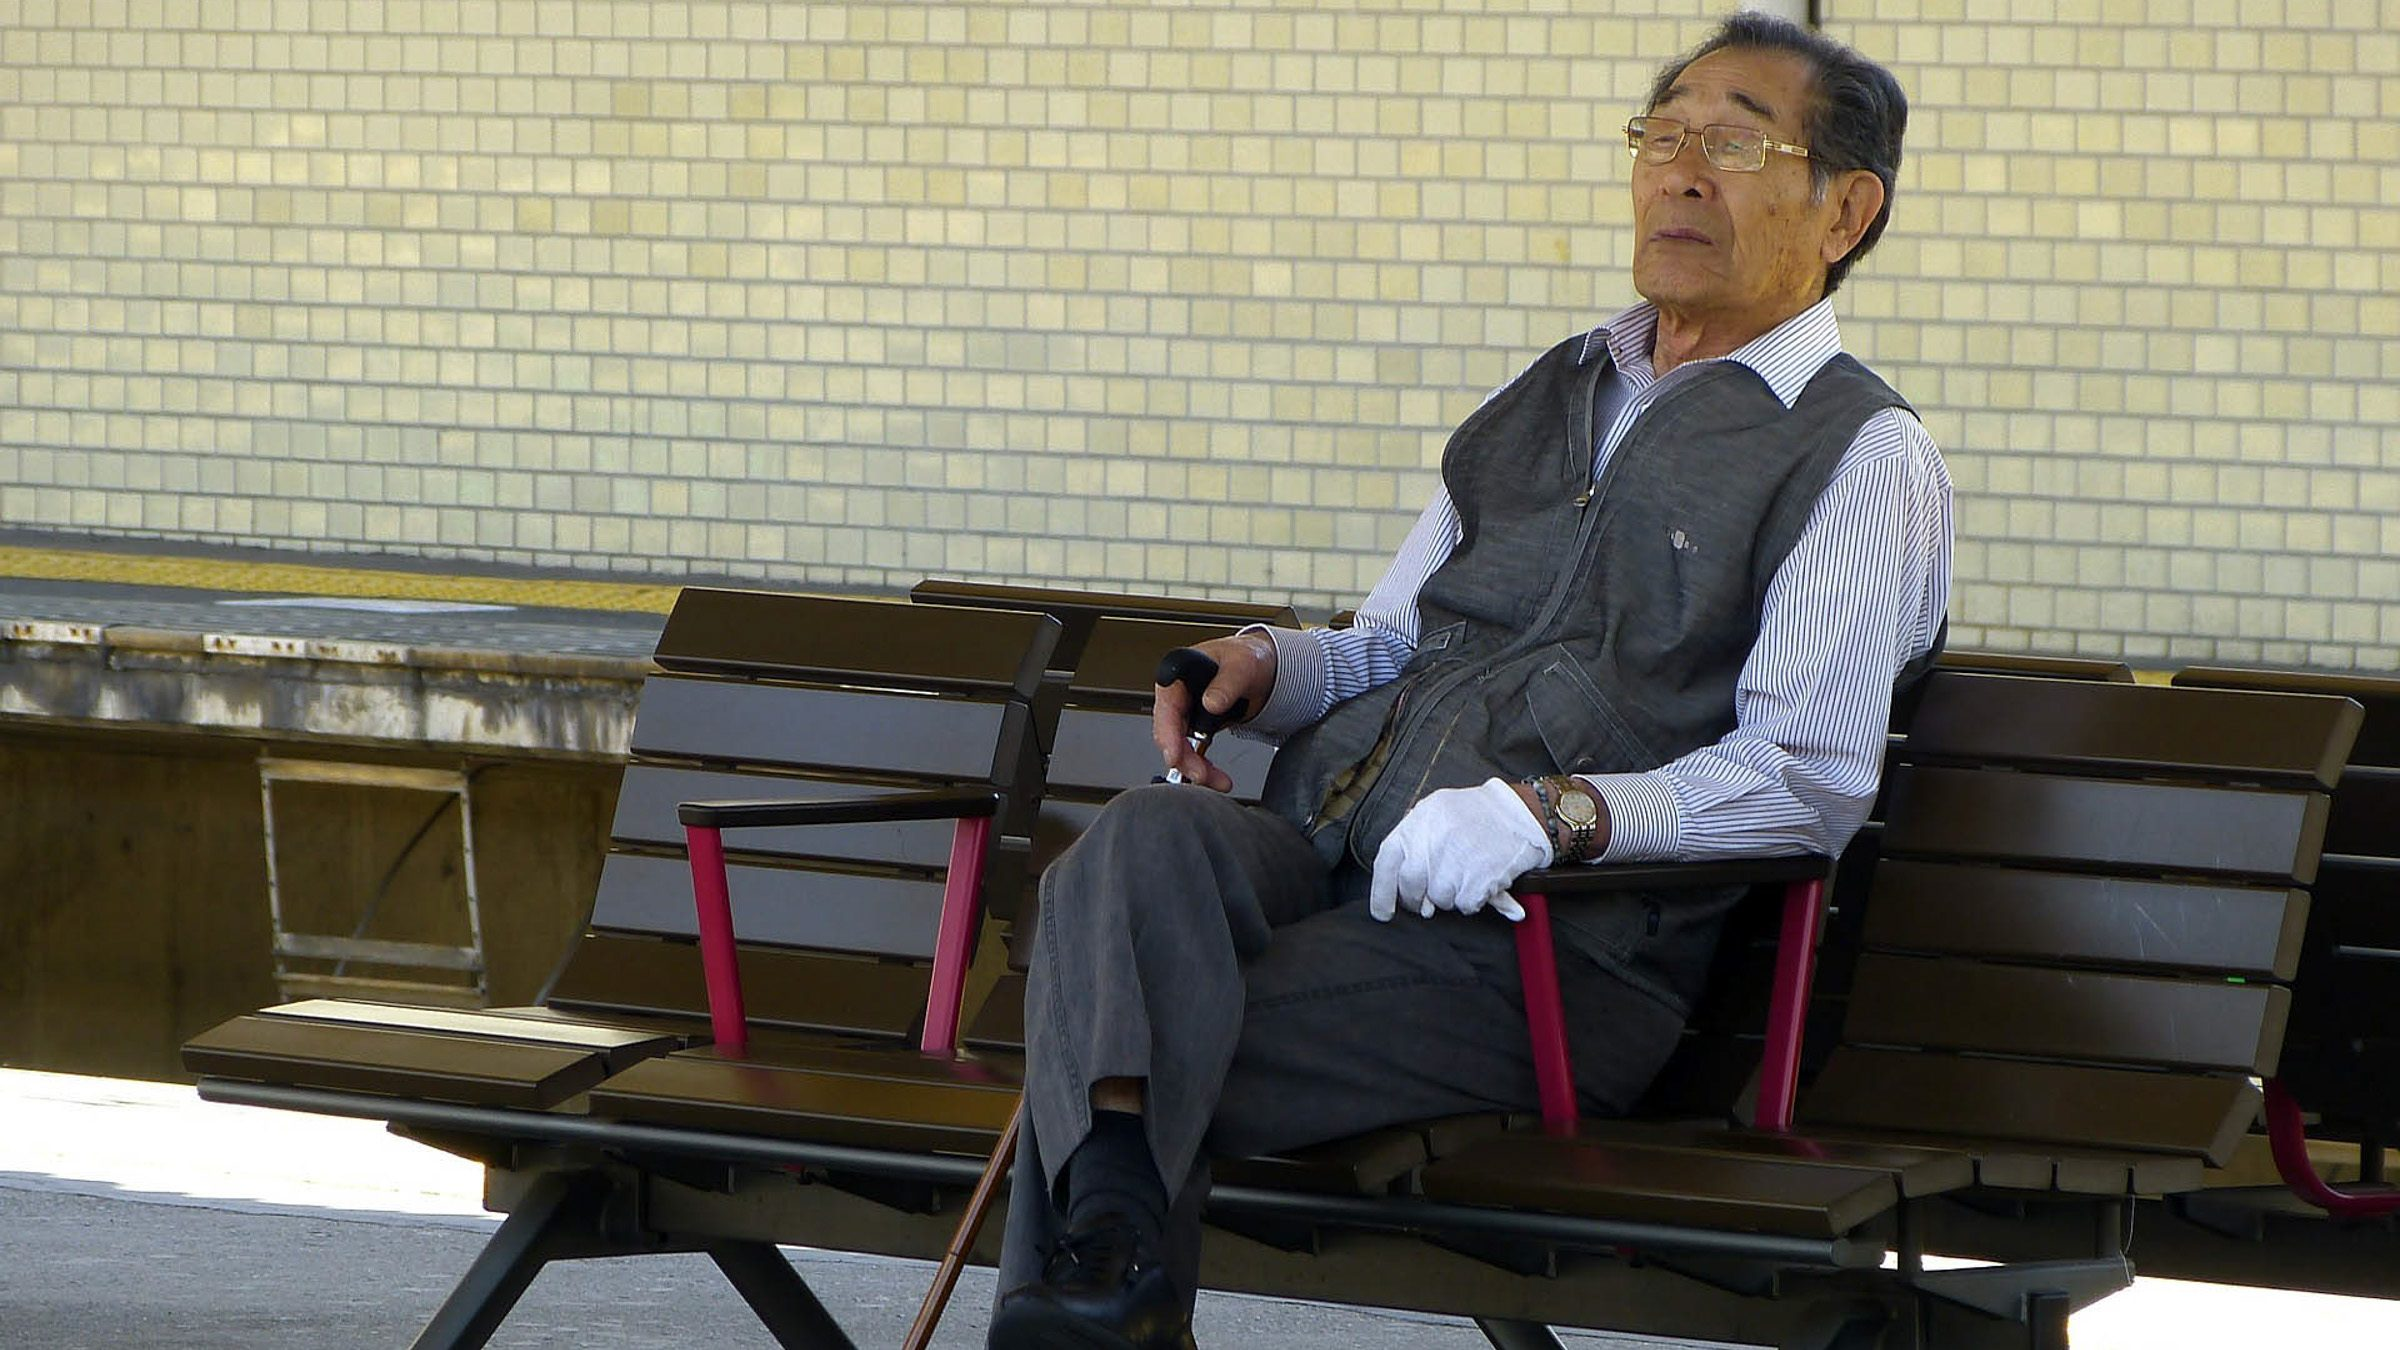 Old Man at the Station